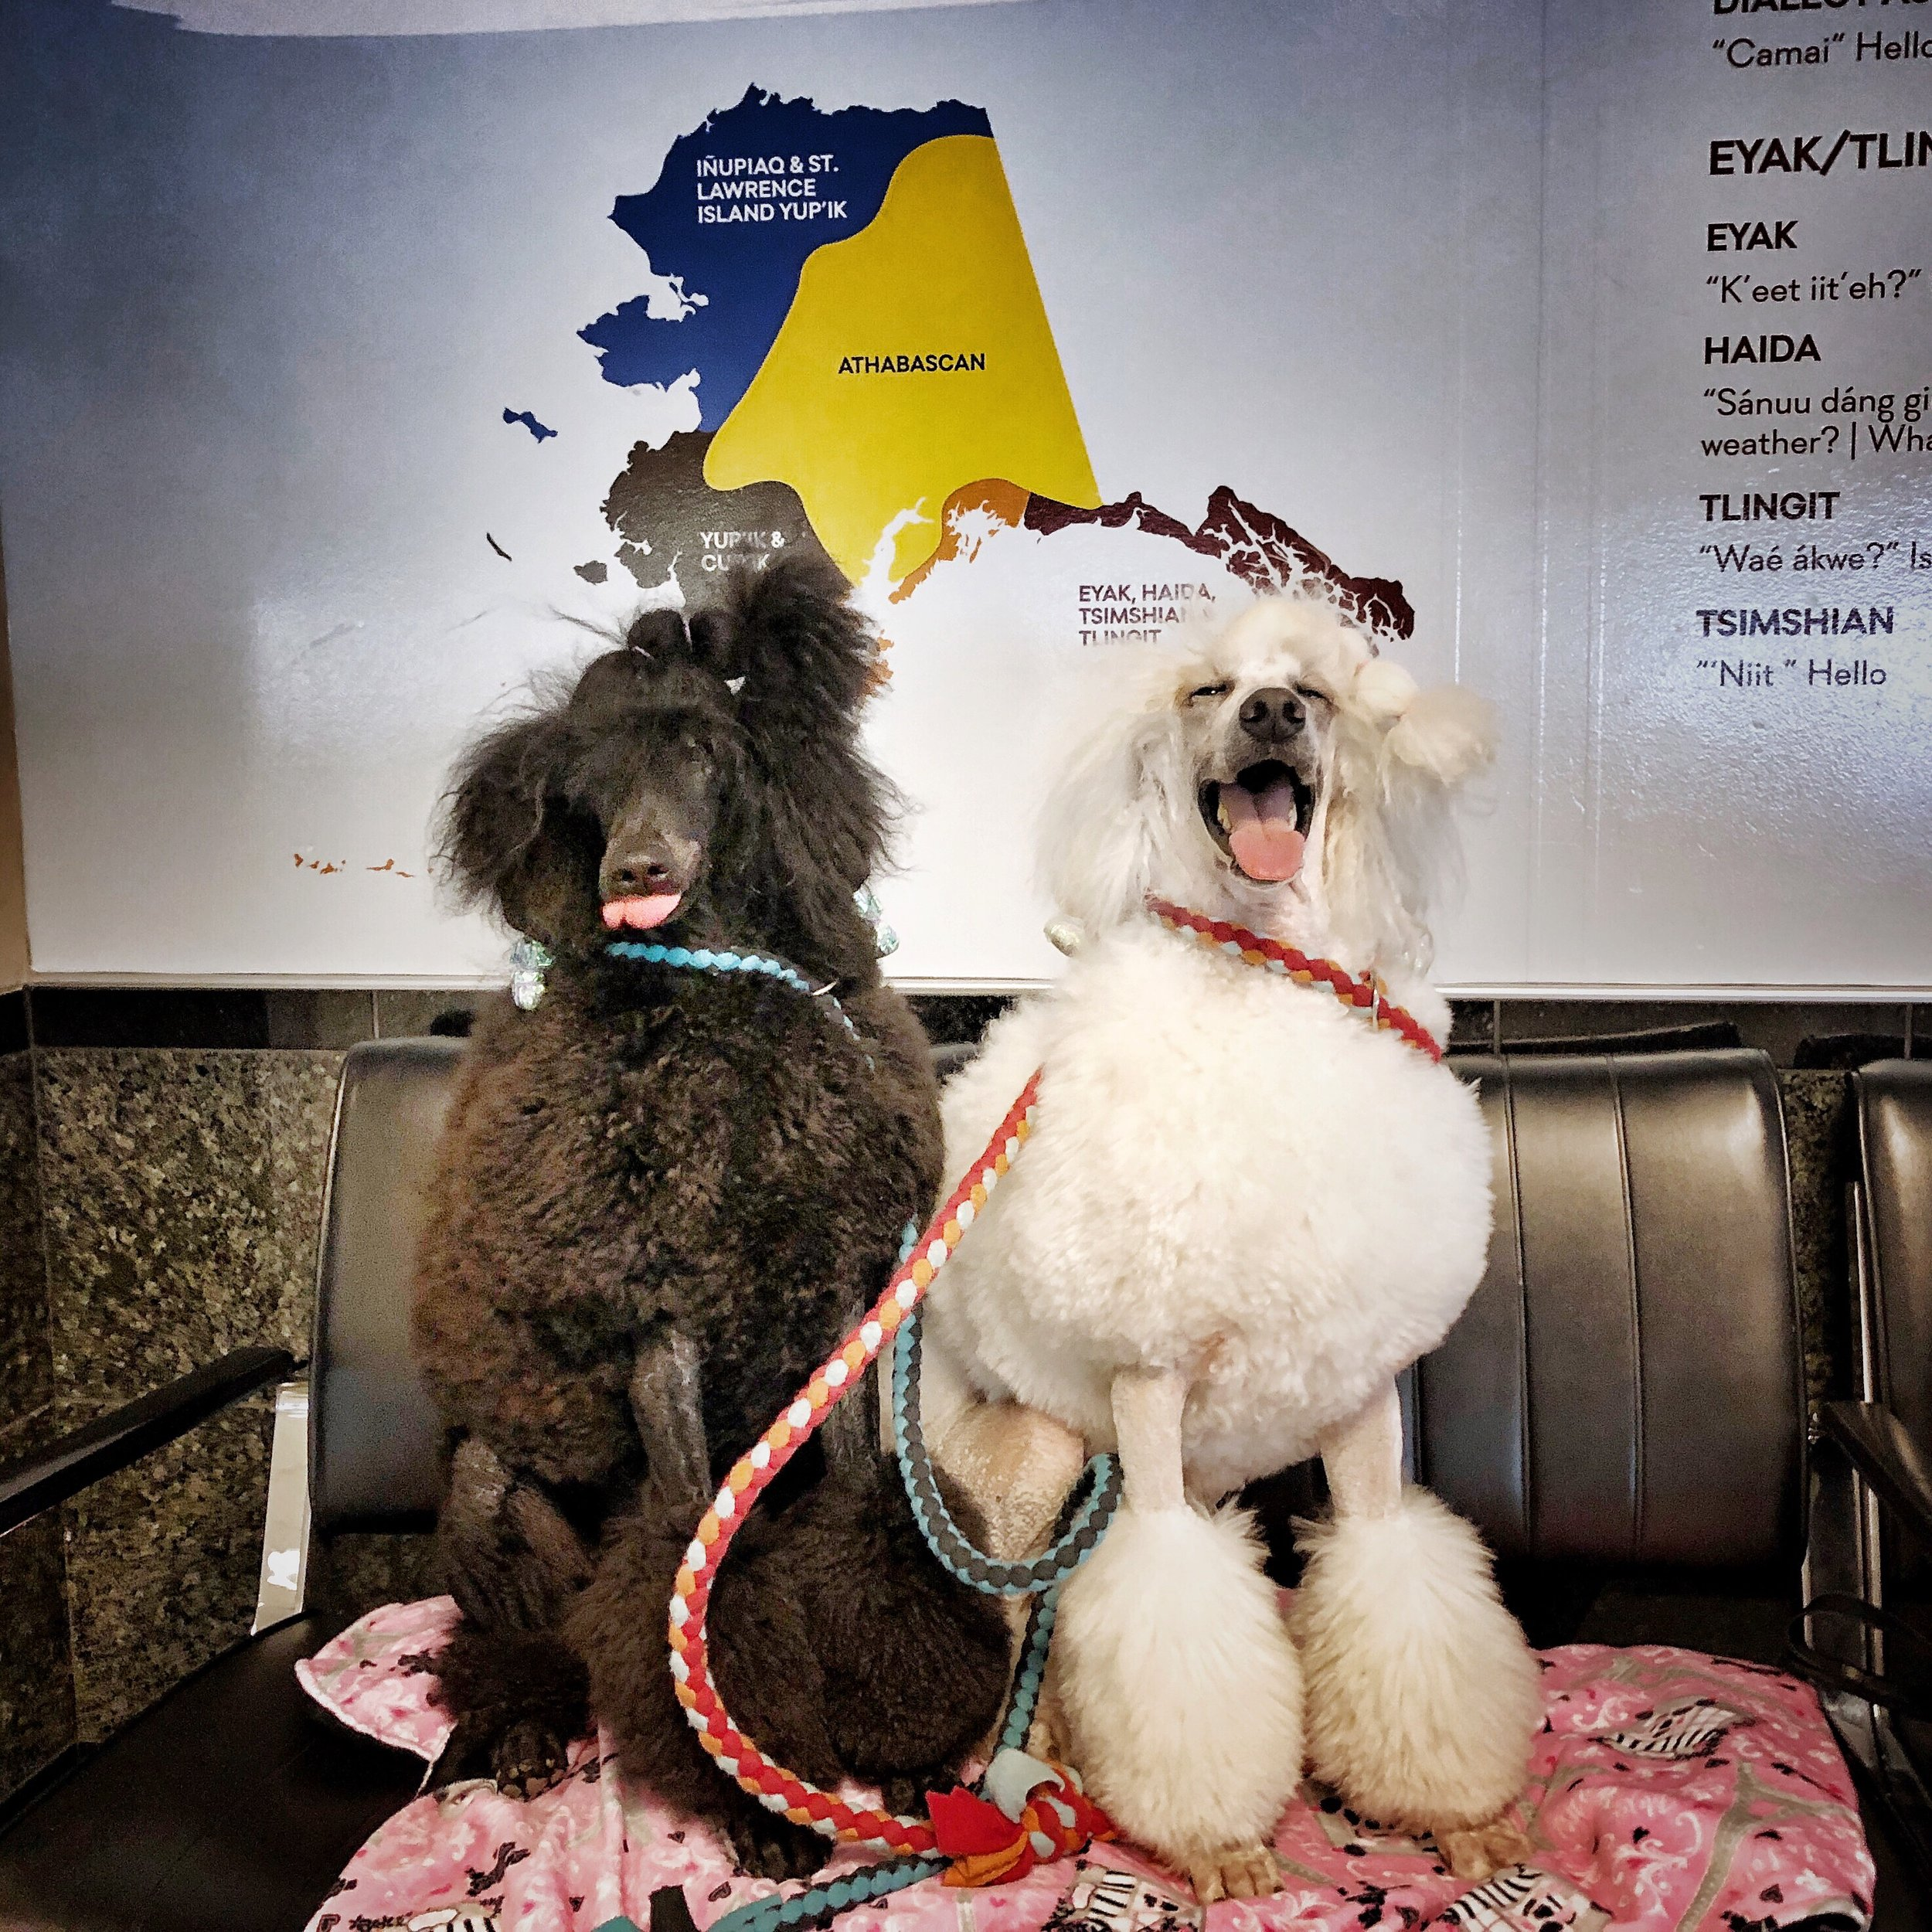 Kluane and Pali posing at the Ted Stevens International Airport in Alaska. We are home!!